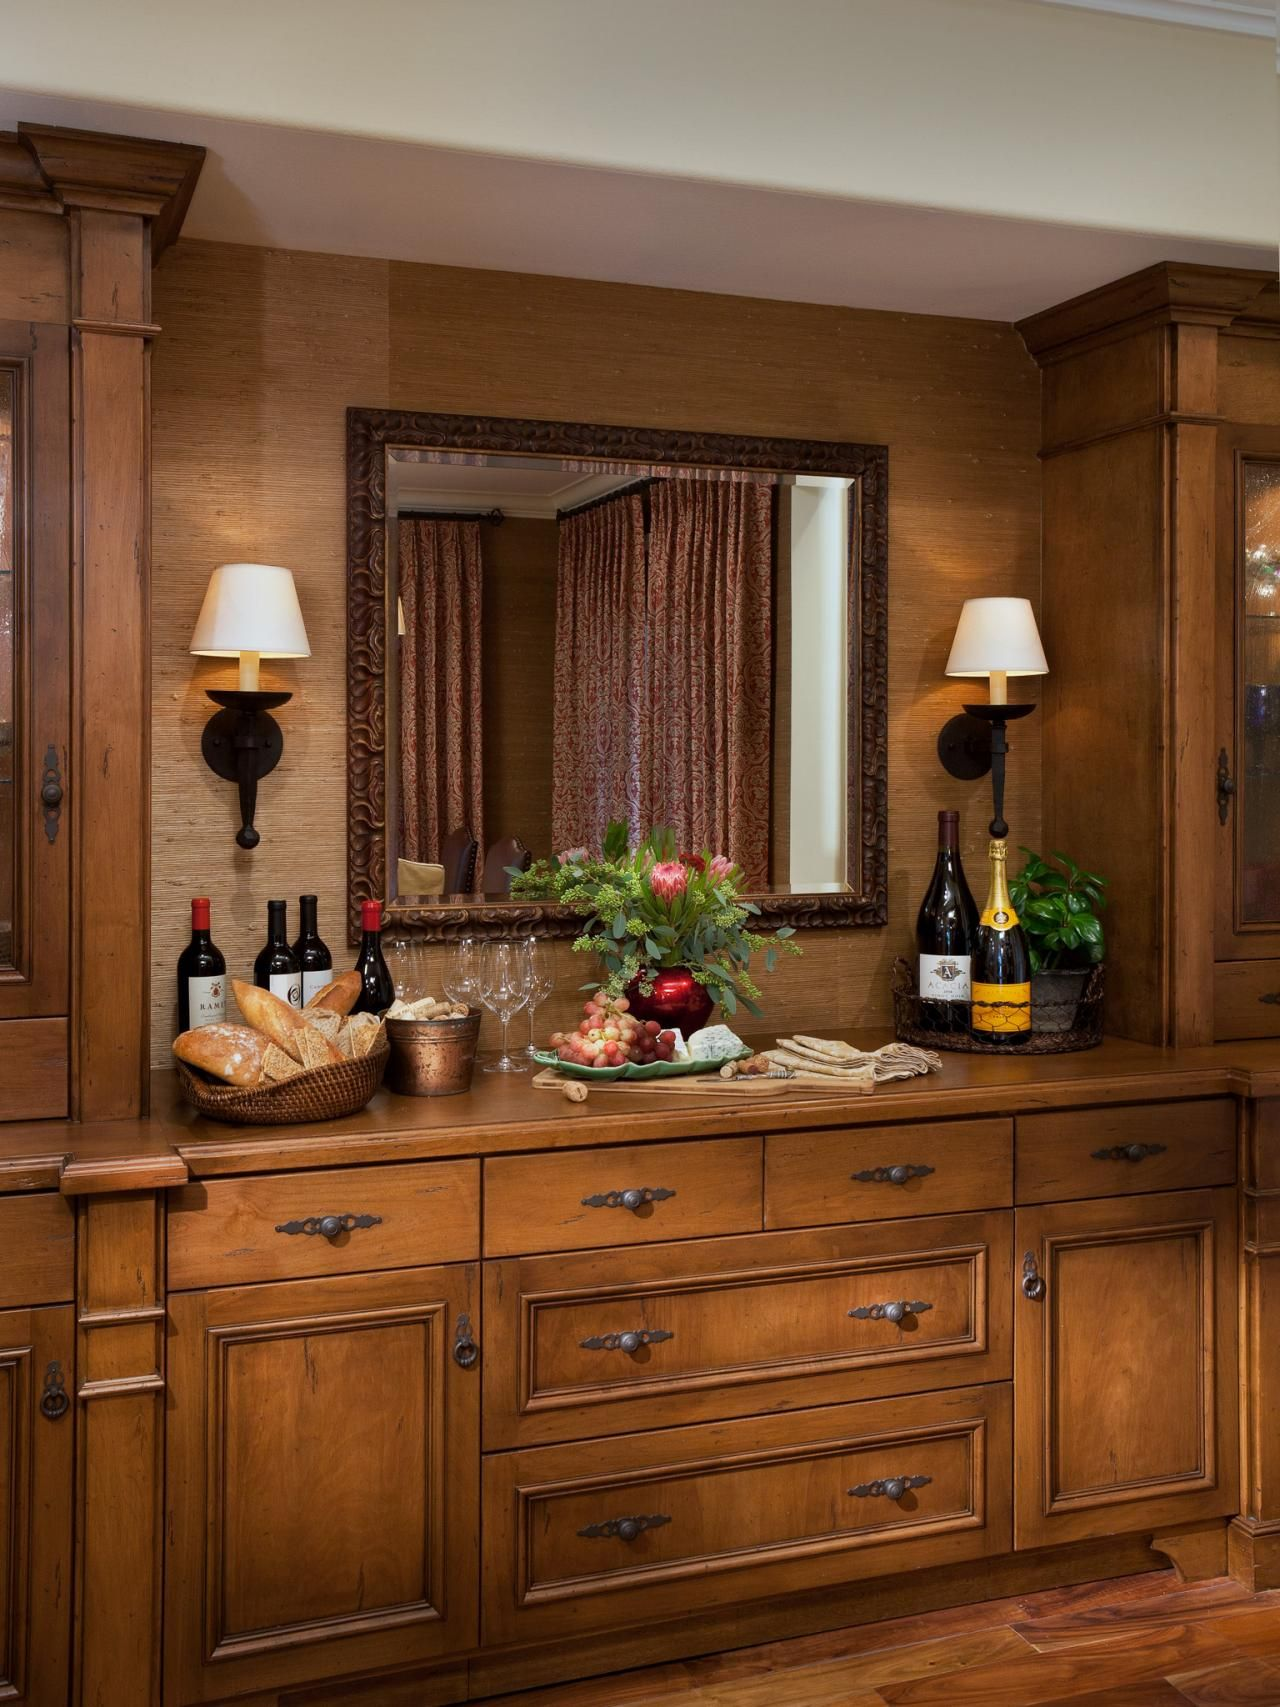 A Custom Built In Provides Storage While Doubling As Bar And Buffet For This Dining Room